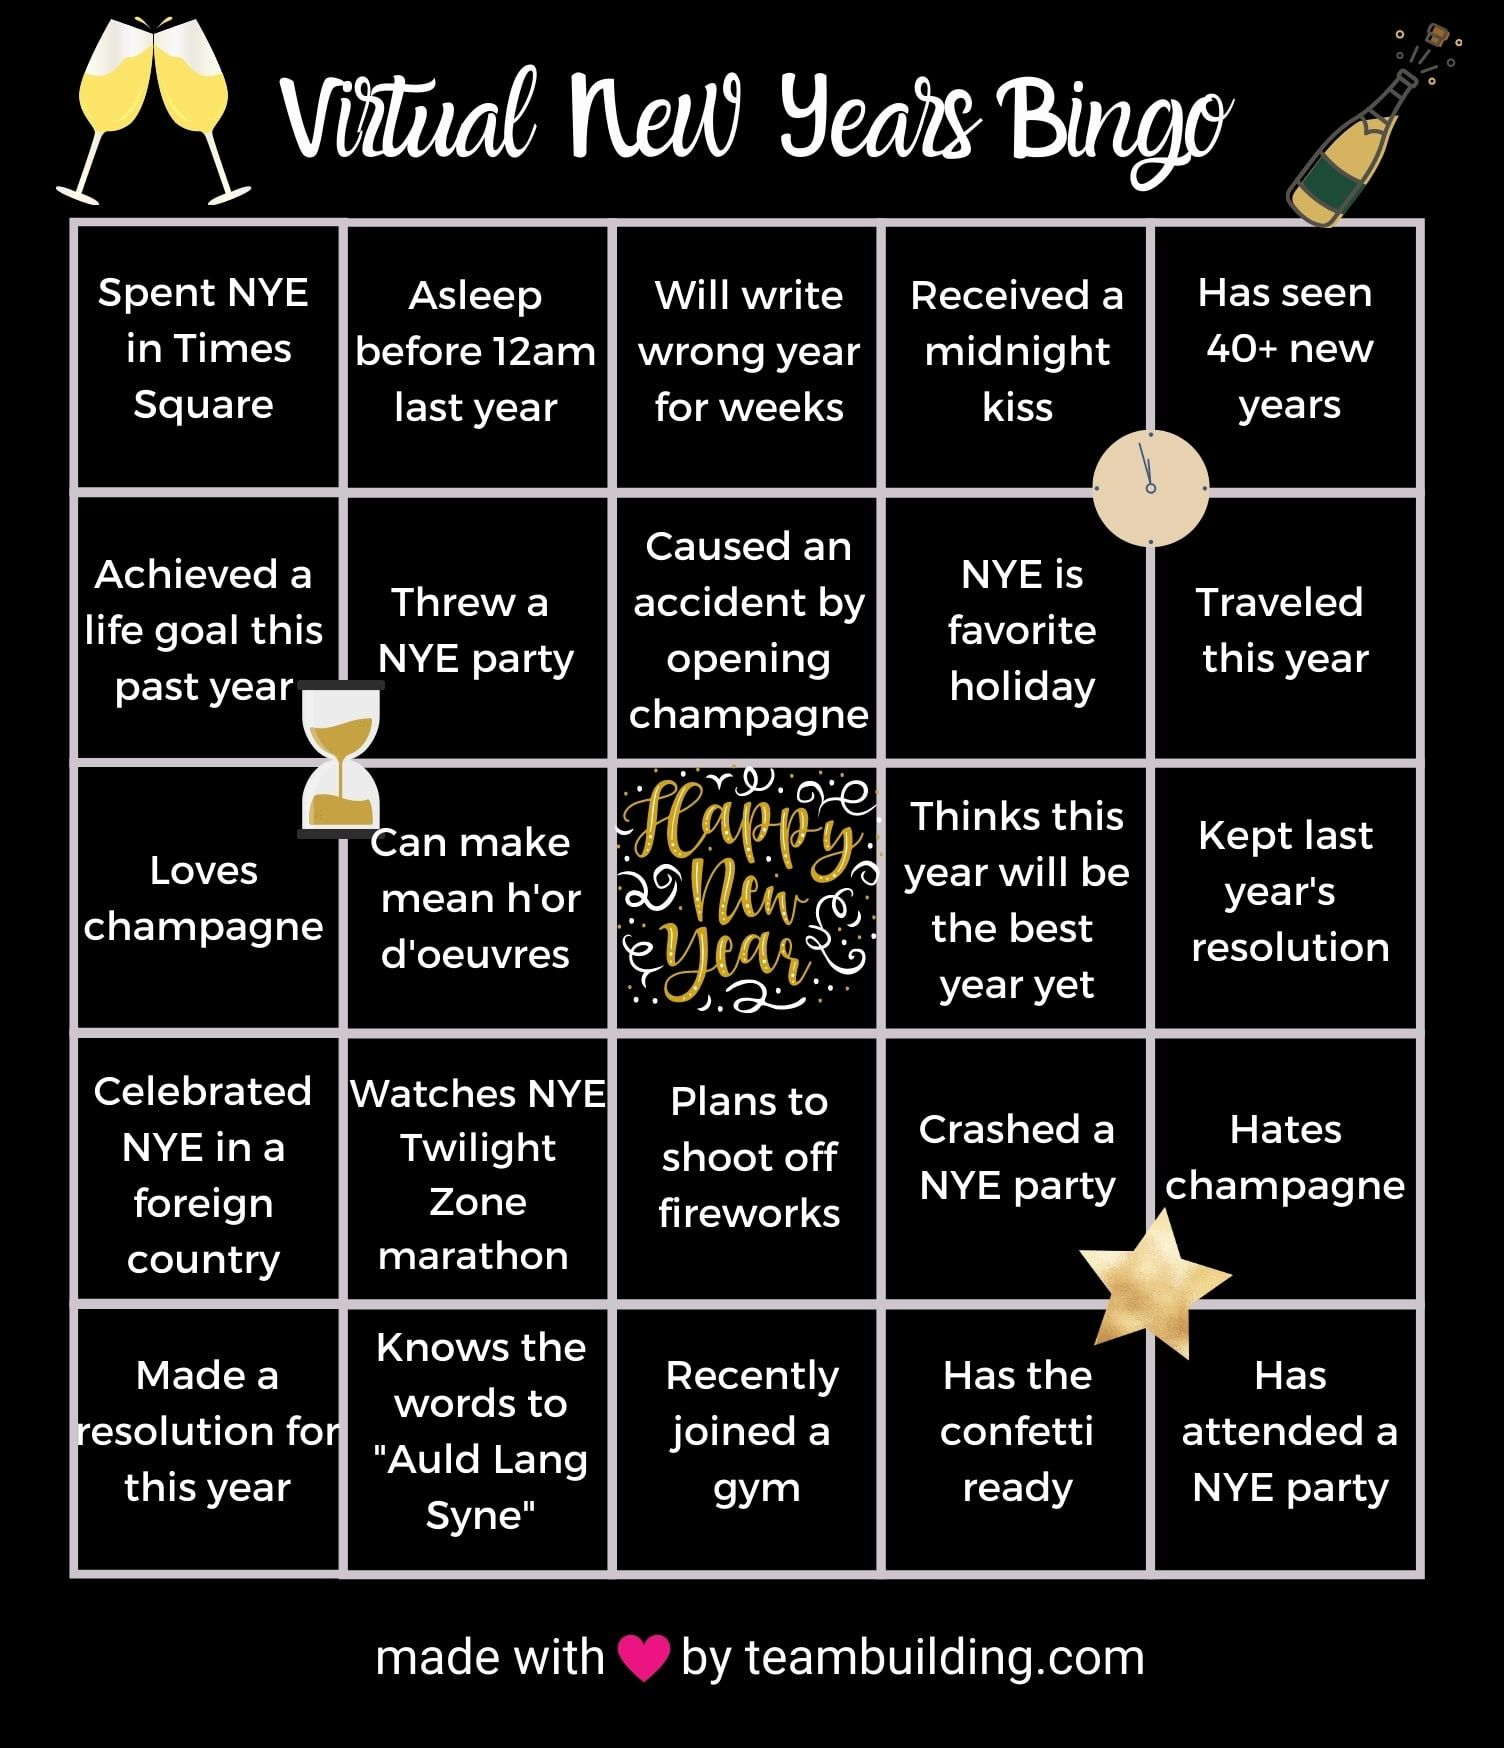 Virtual New Years Bingo template